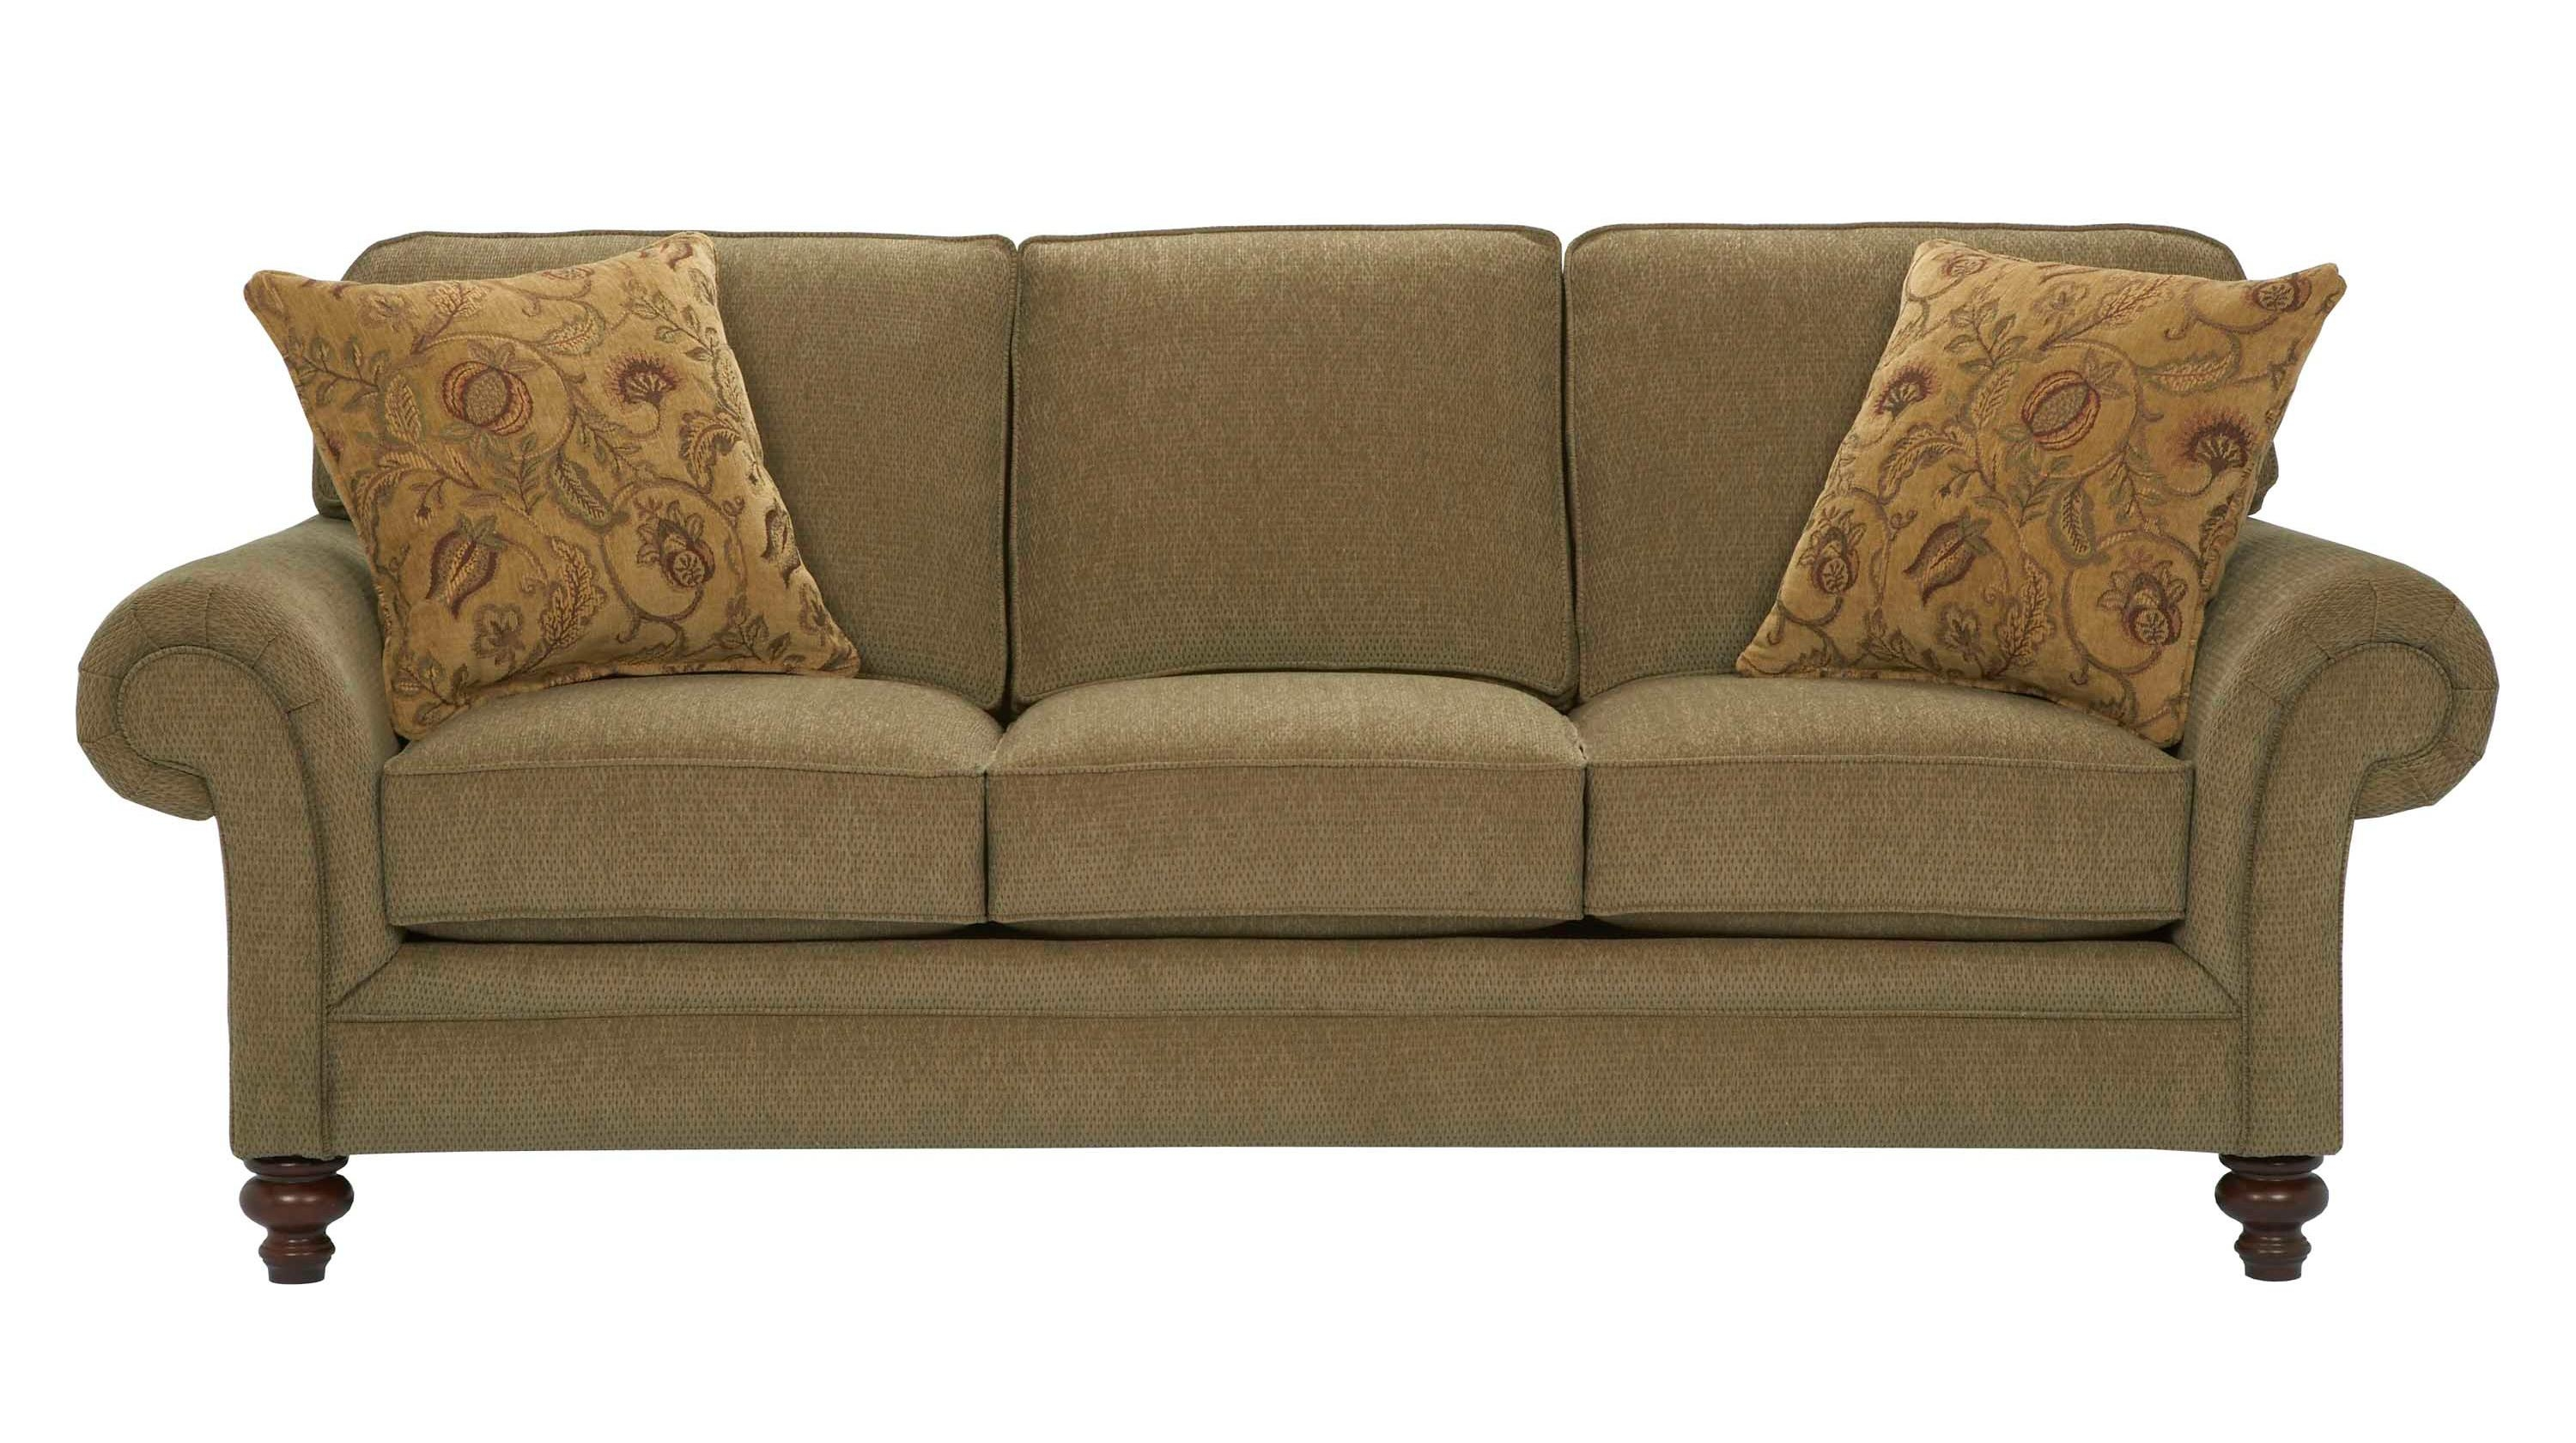 50 Broyhill Sectional Sofa, Broyhill Furniture Audrey Sofa 37623 with regard to Broyhill Harrison Sofas